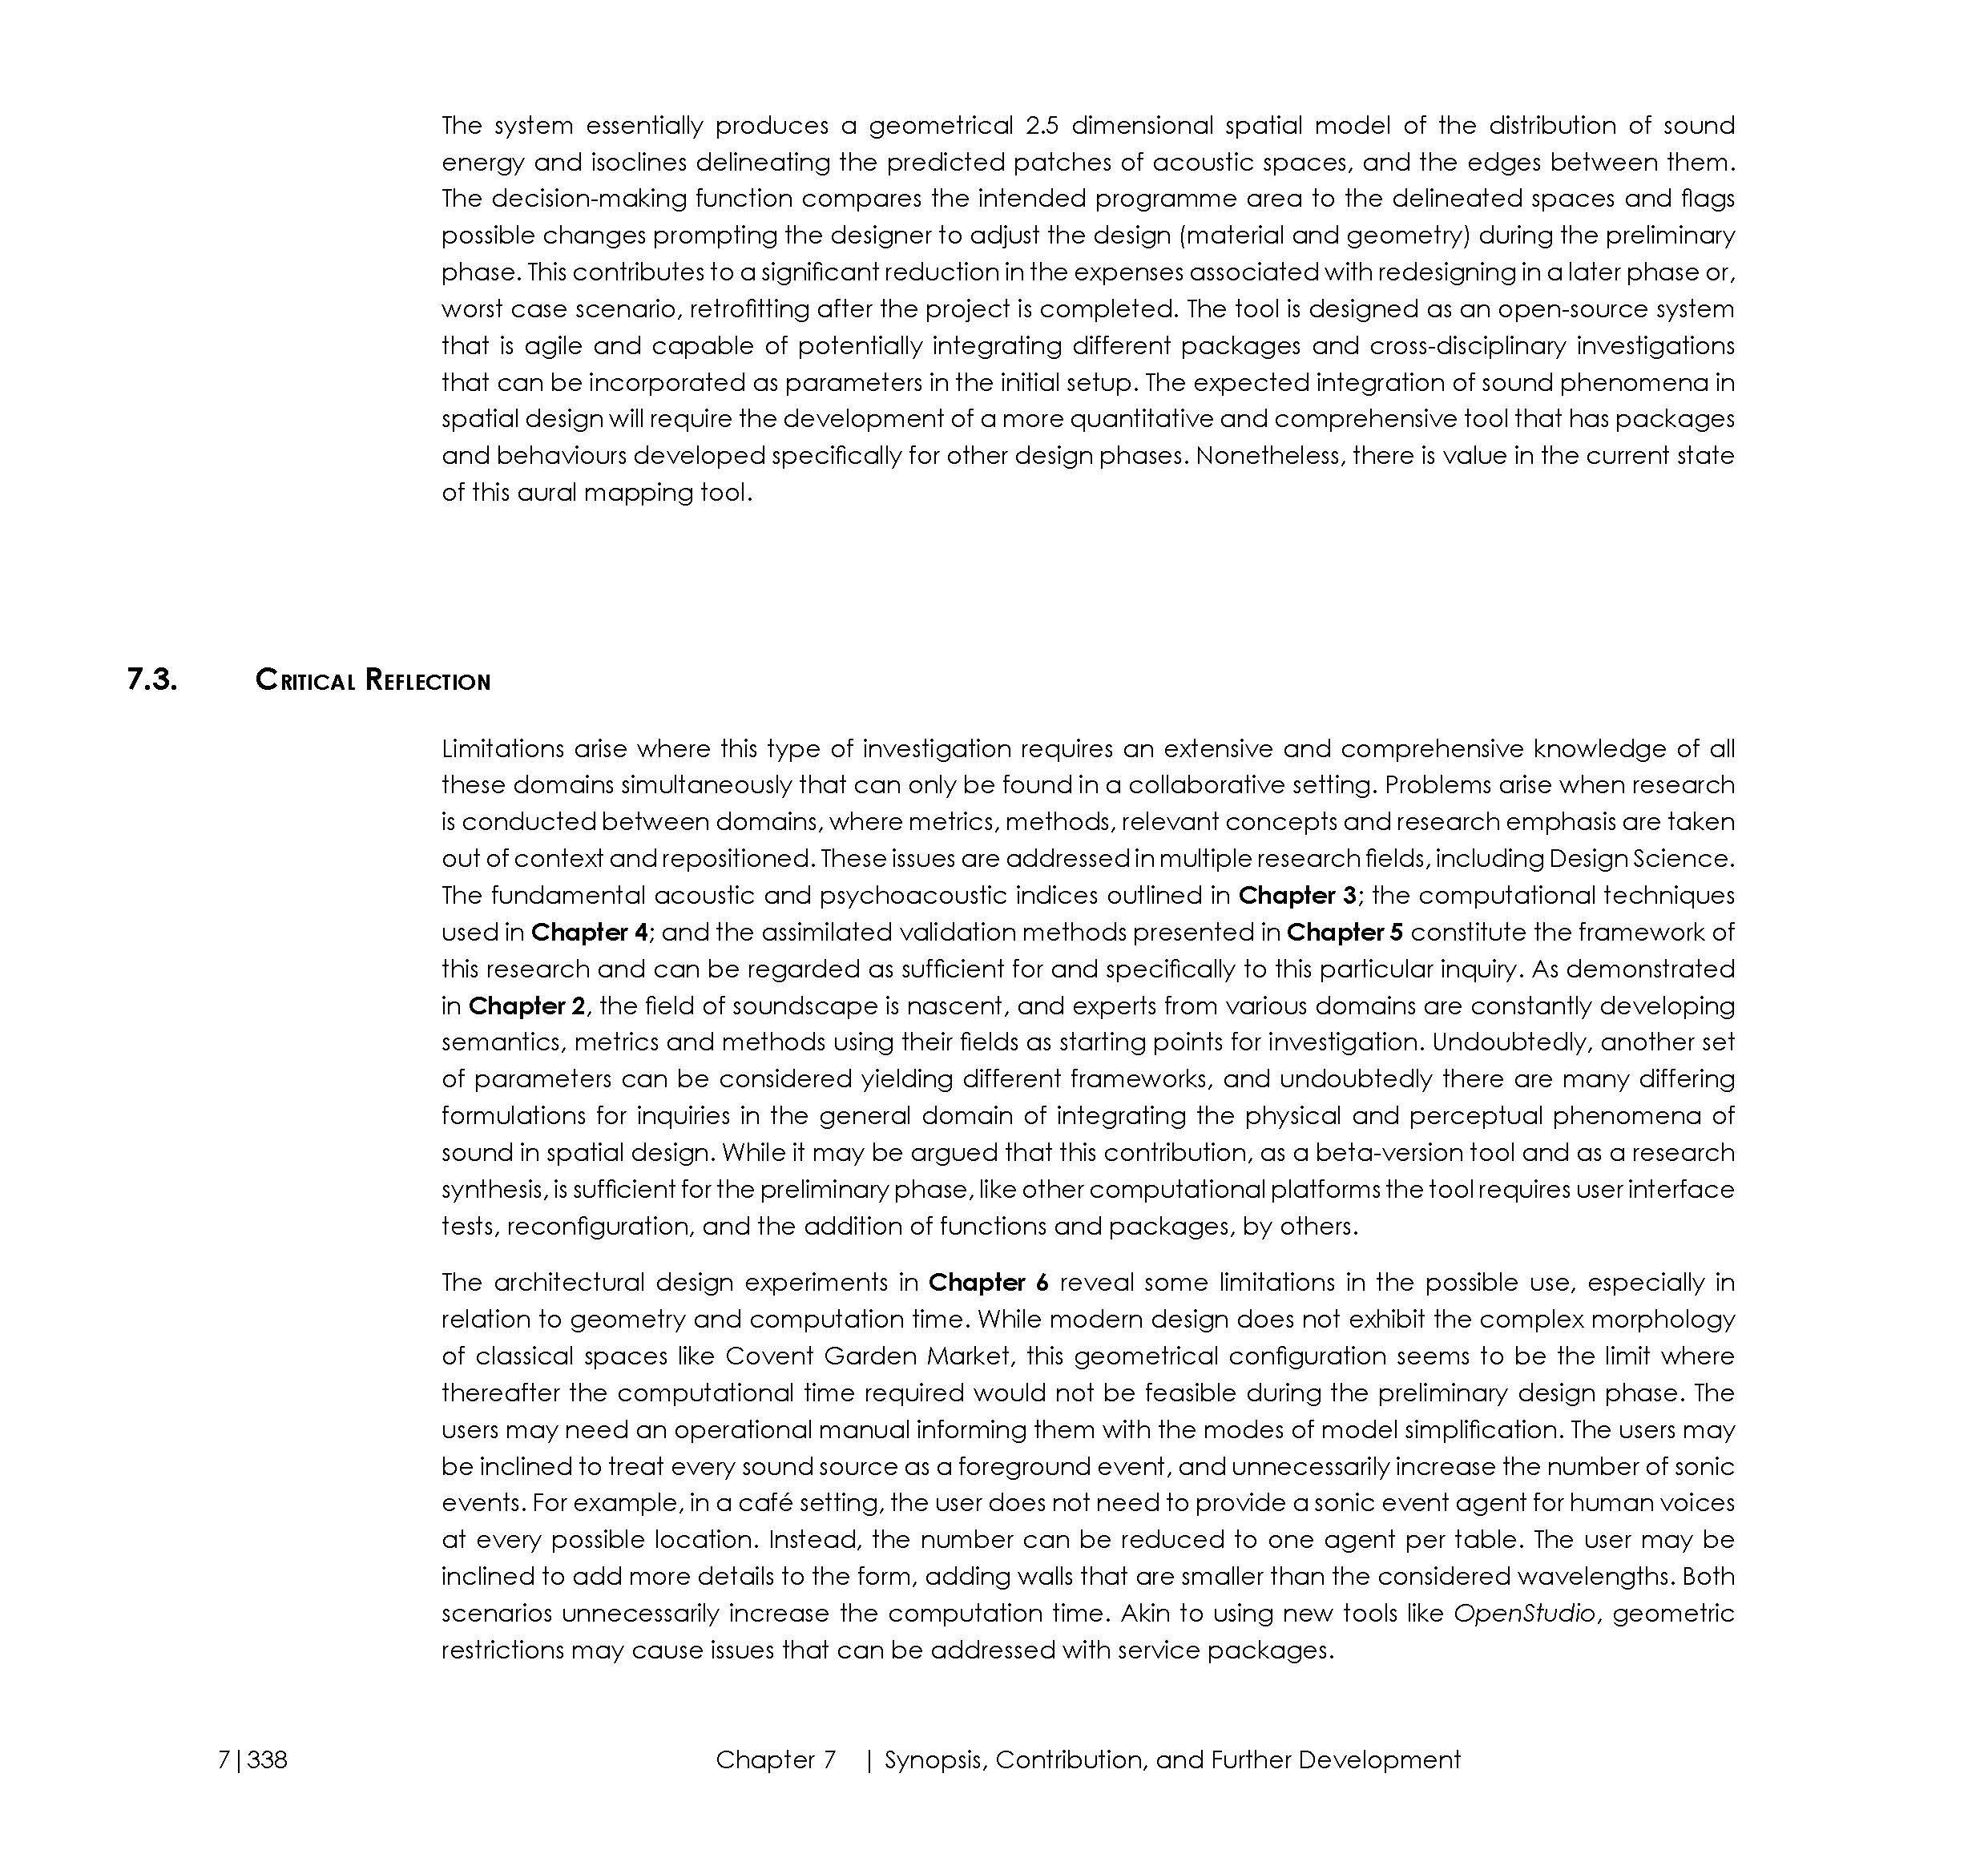 16.03.03_Thesis_01_Interactive_Page_374.jpg